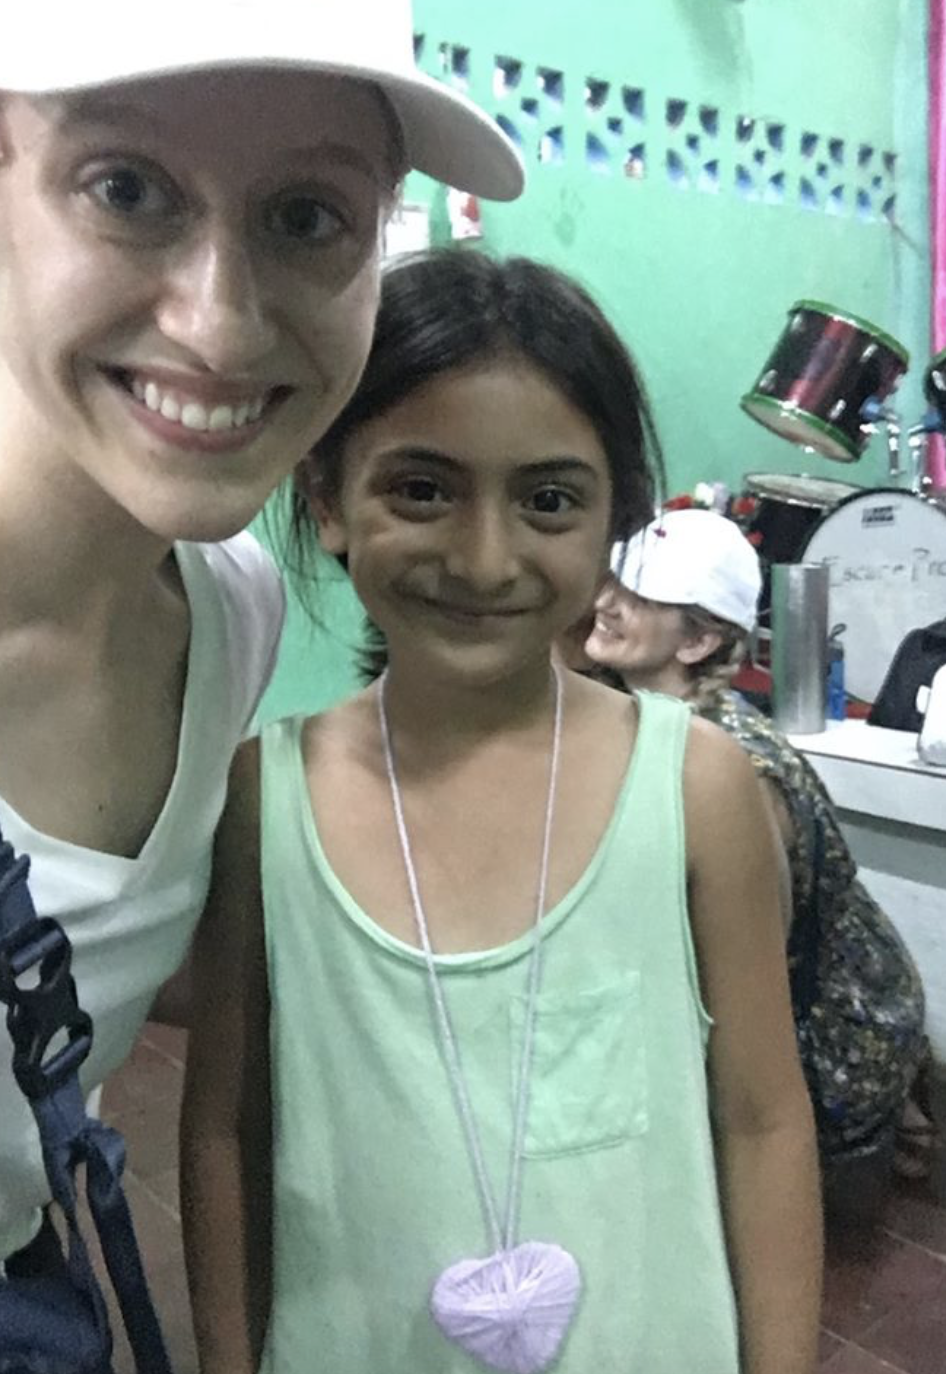 In May 2019 I travelled to Managua, Nicaragua for a mission trip. While I was there I held two heart making events with members of the community.